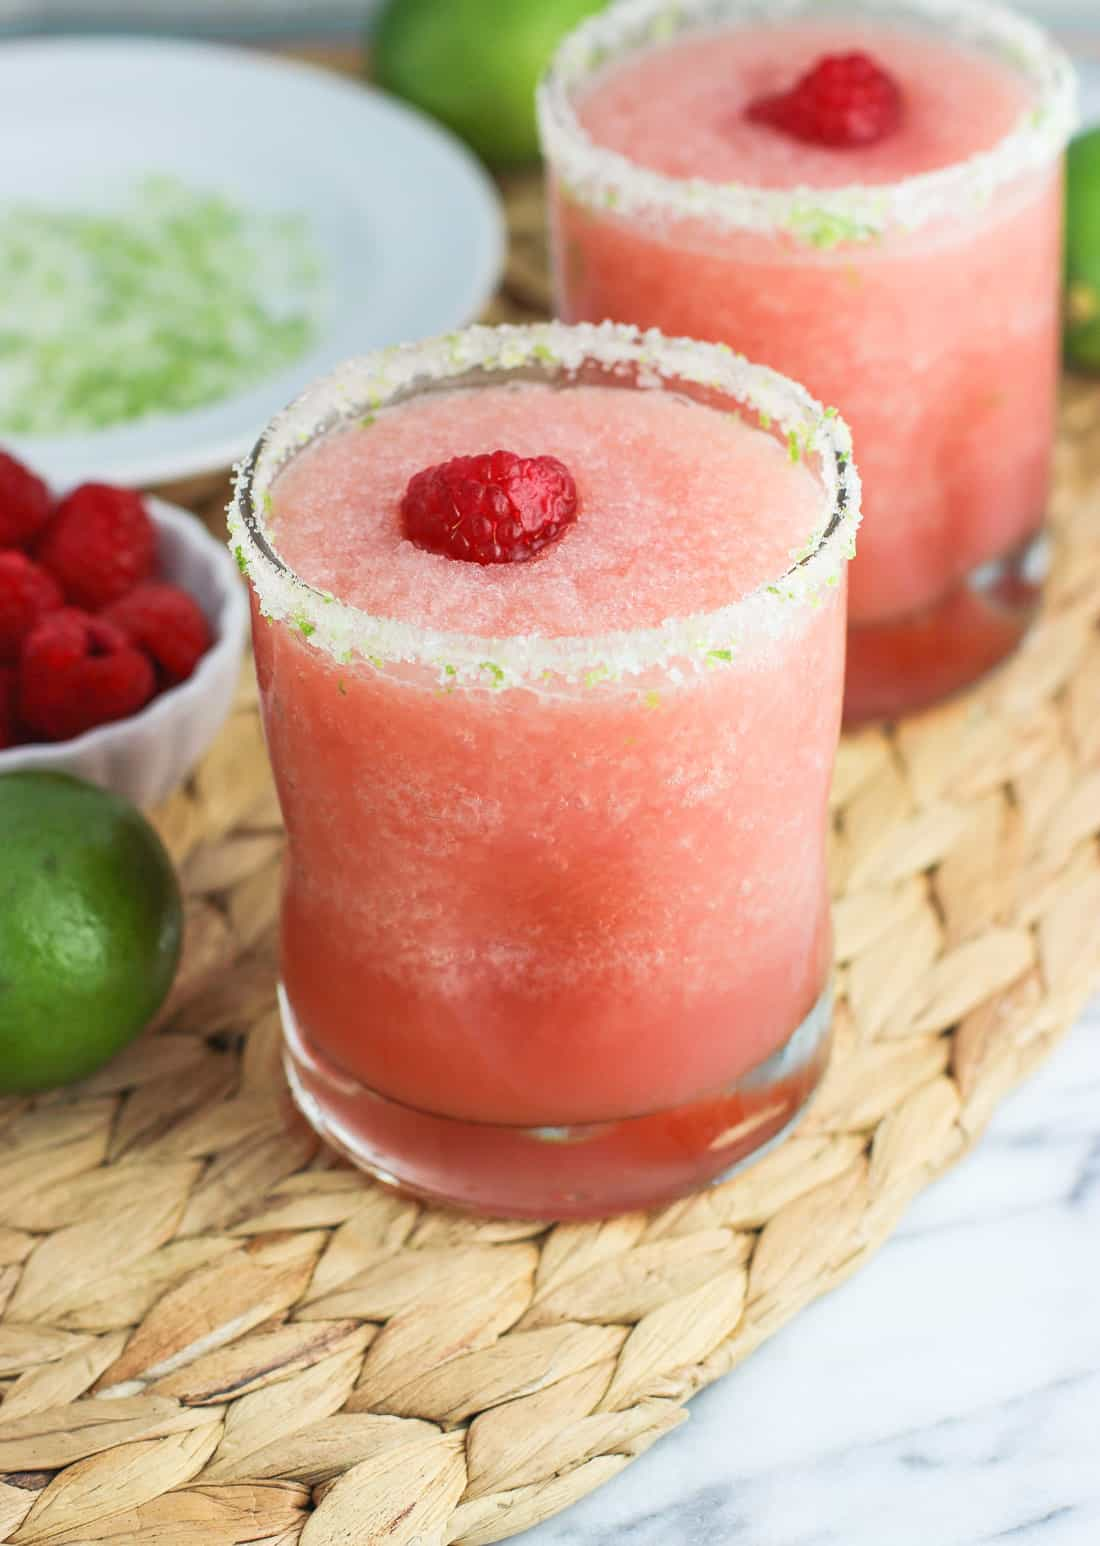 Tropical Citrus Raspberry Frozen Margaritas are a refreshing and better-for-you twist on a summer favorite - frozen cocktails! These margaritas are tart, frosty, and easy.